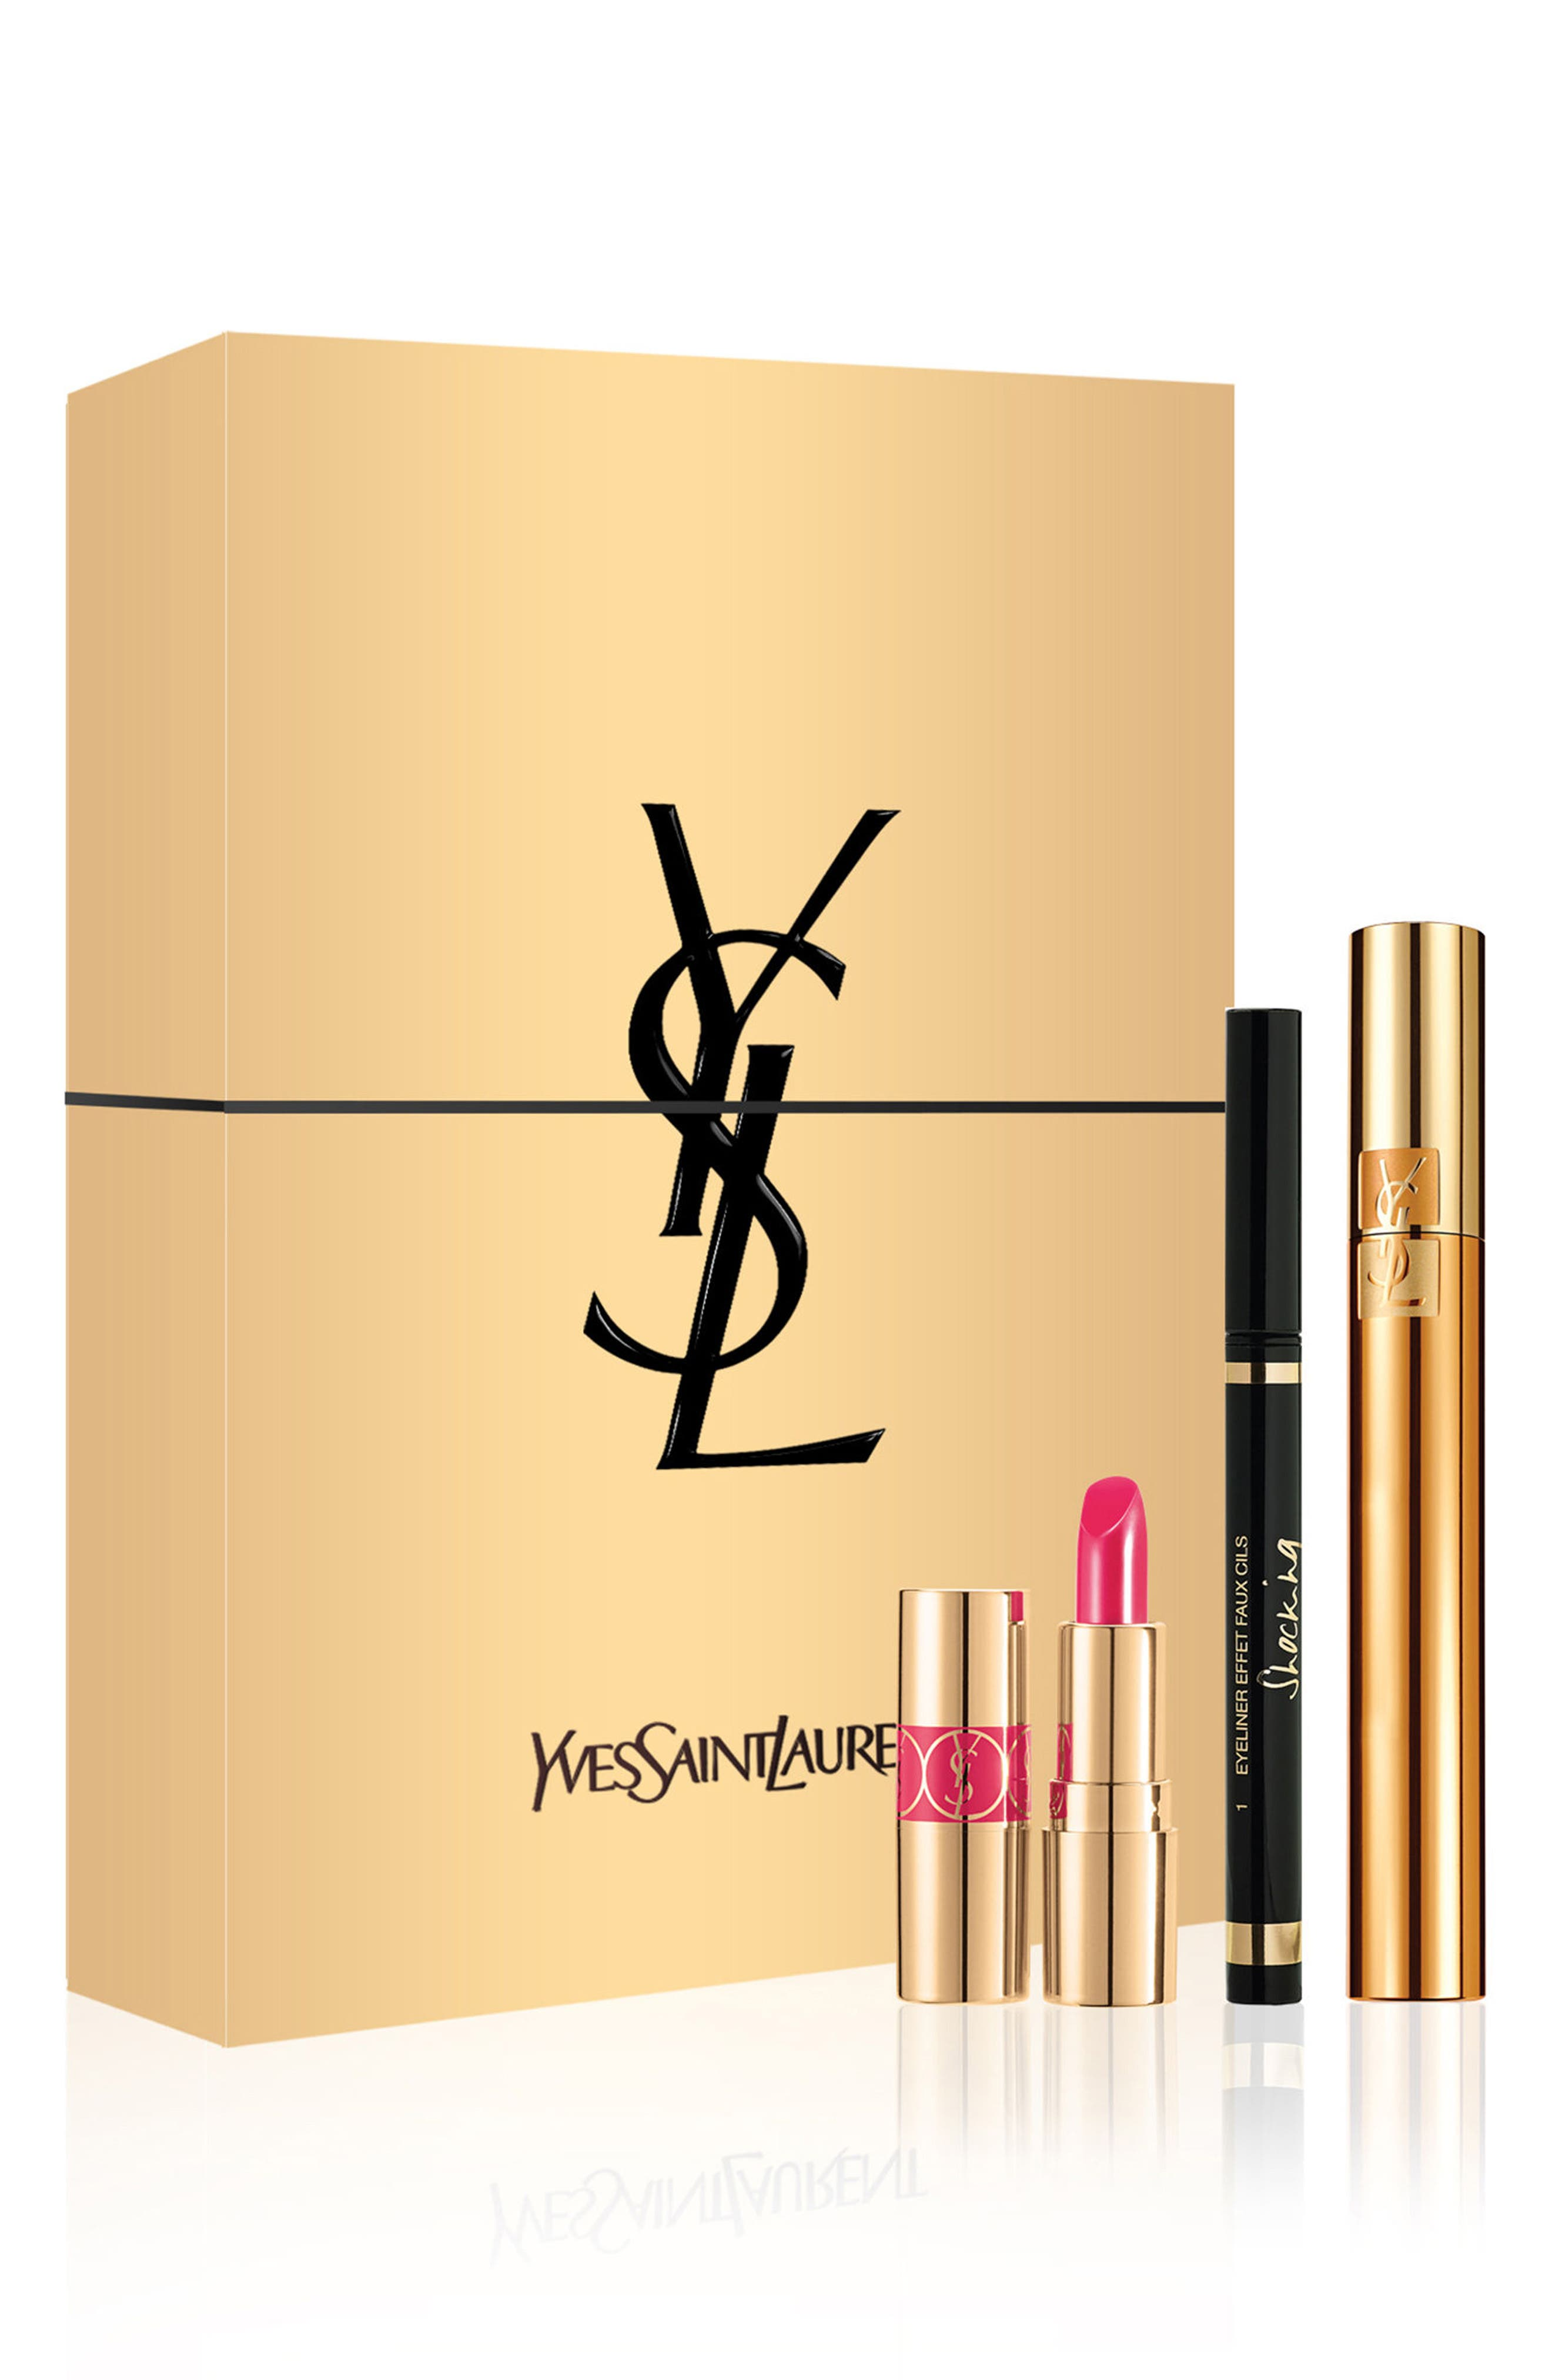 Yves Saint Laurent Extravagant Eyes Faux Cils Gift Set (Limited Edition) ($80 Value)